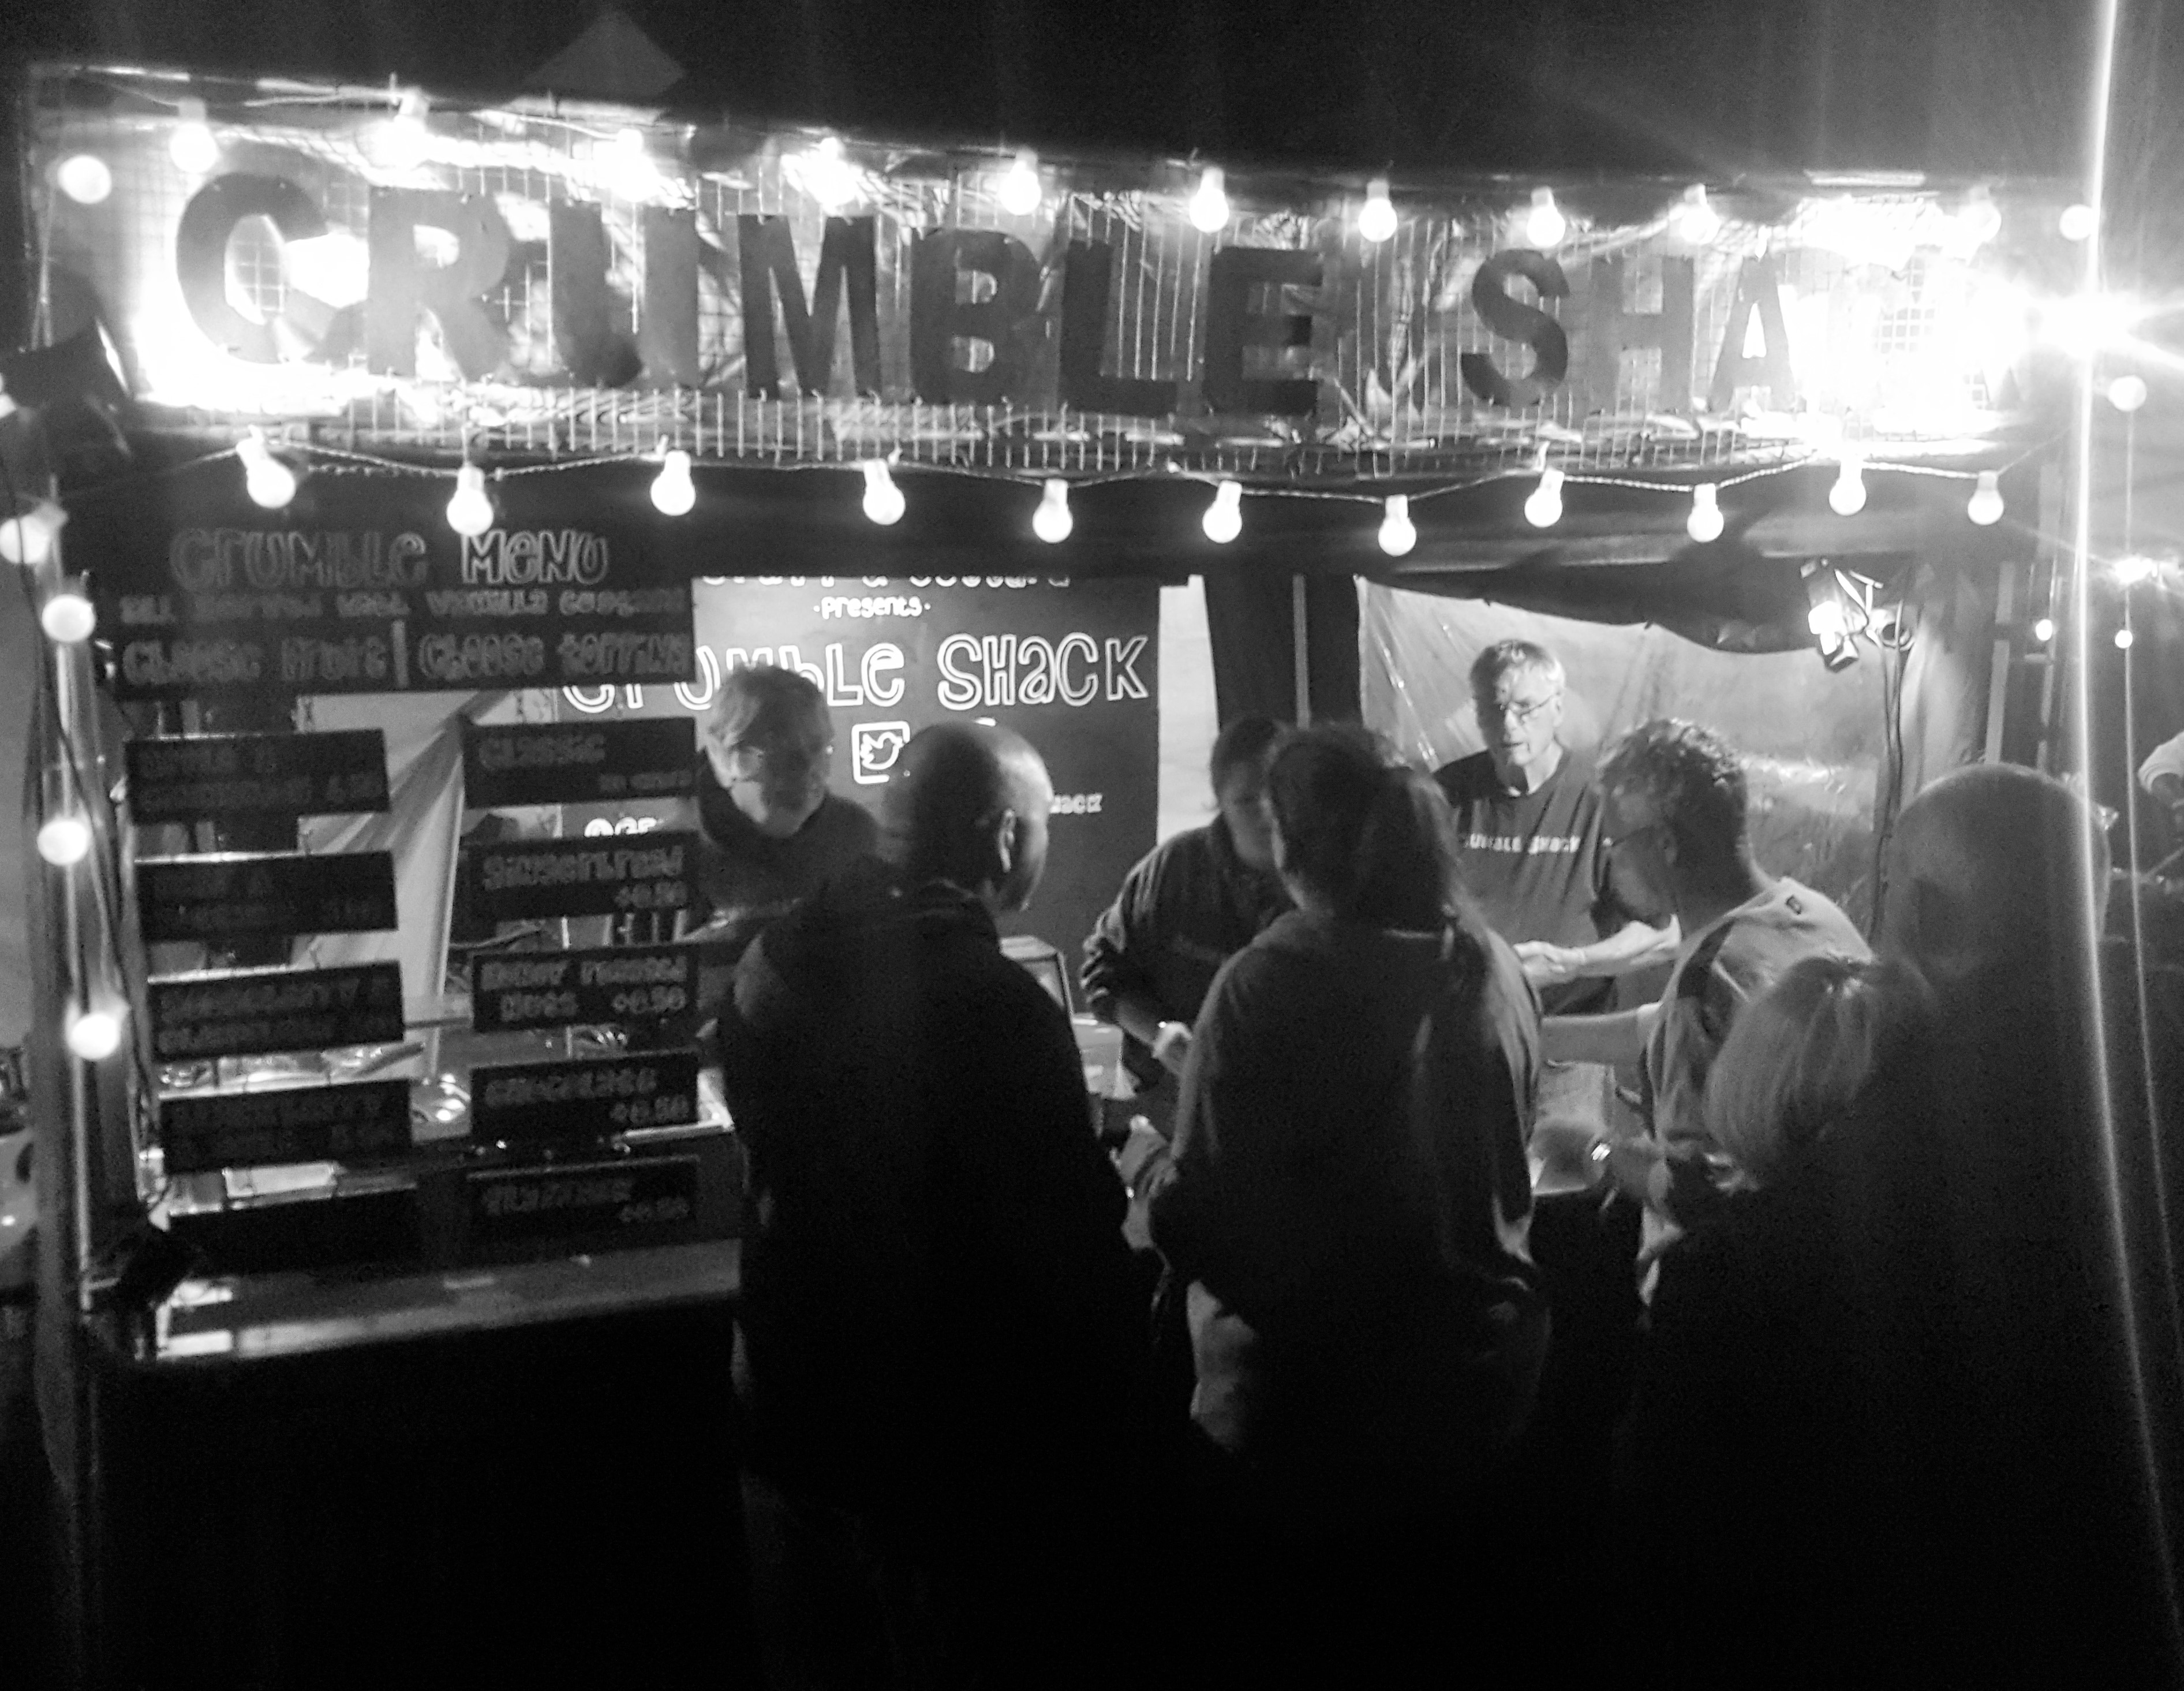 Crumble Shack at Festival No.6